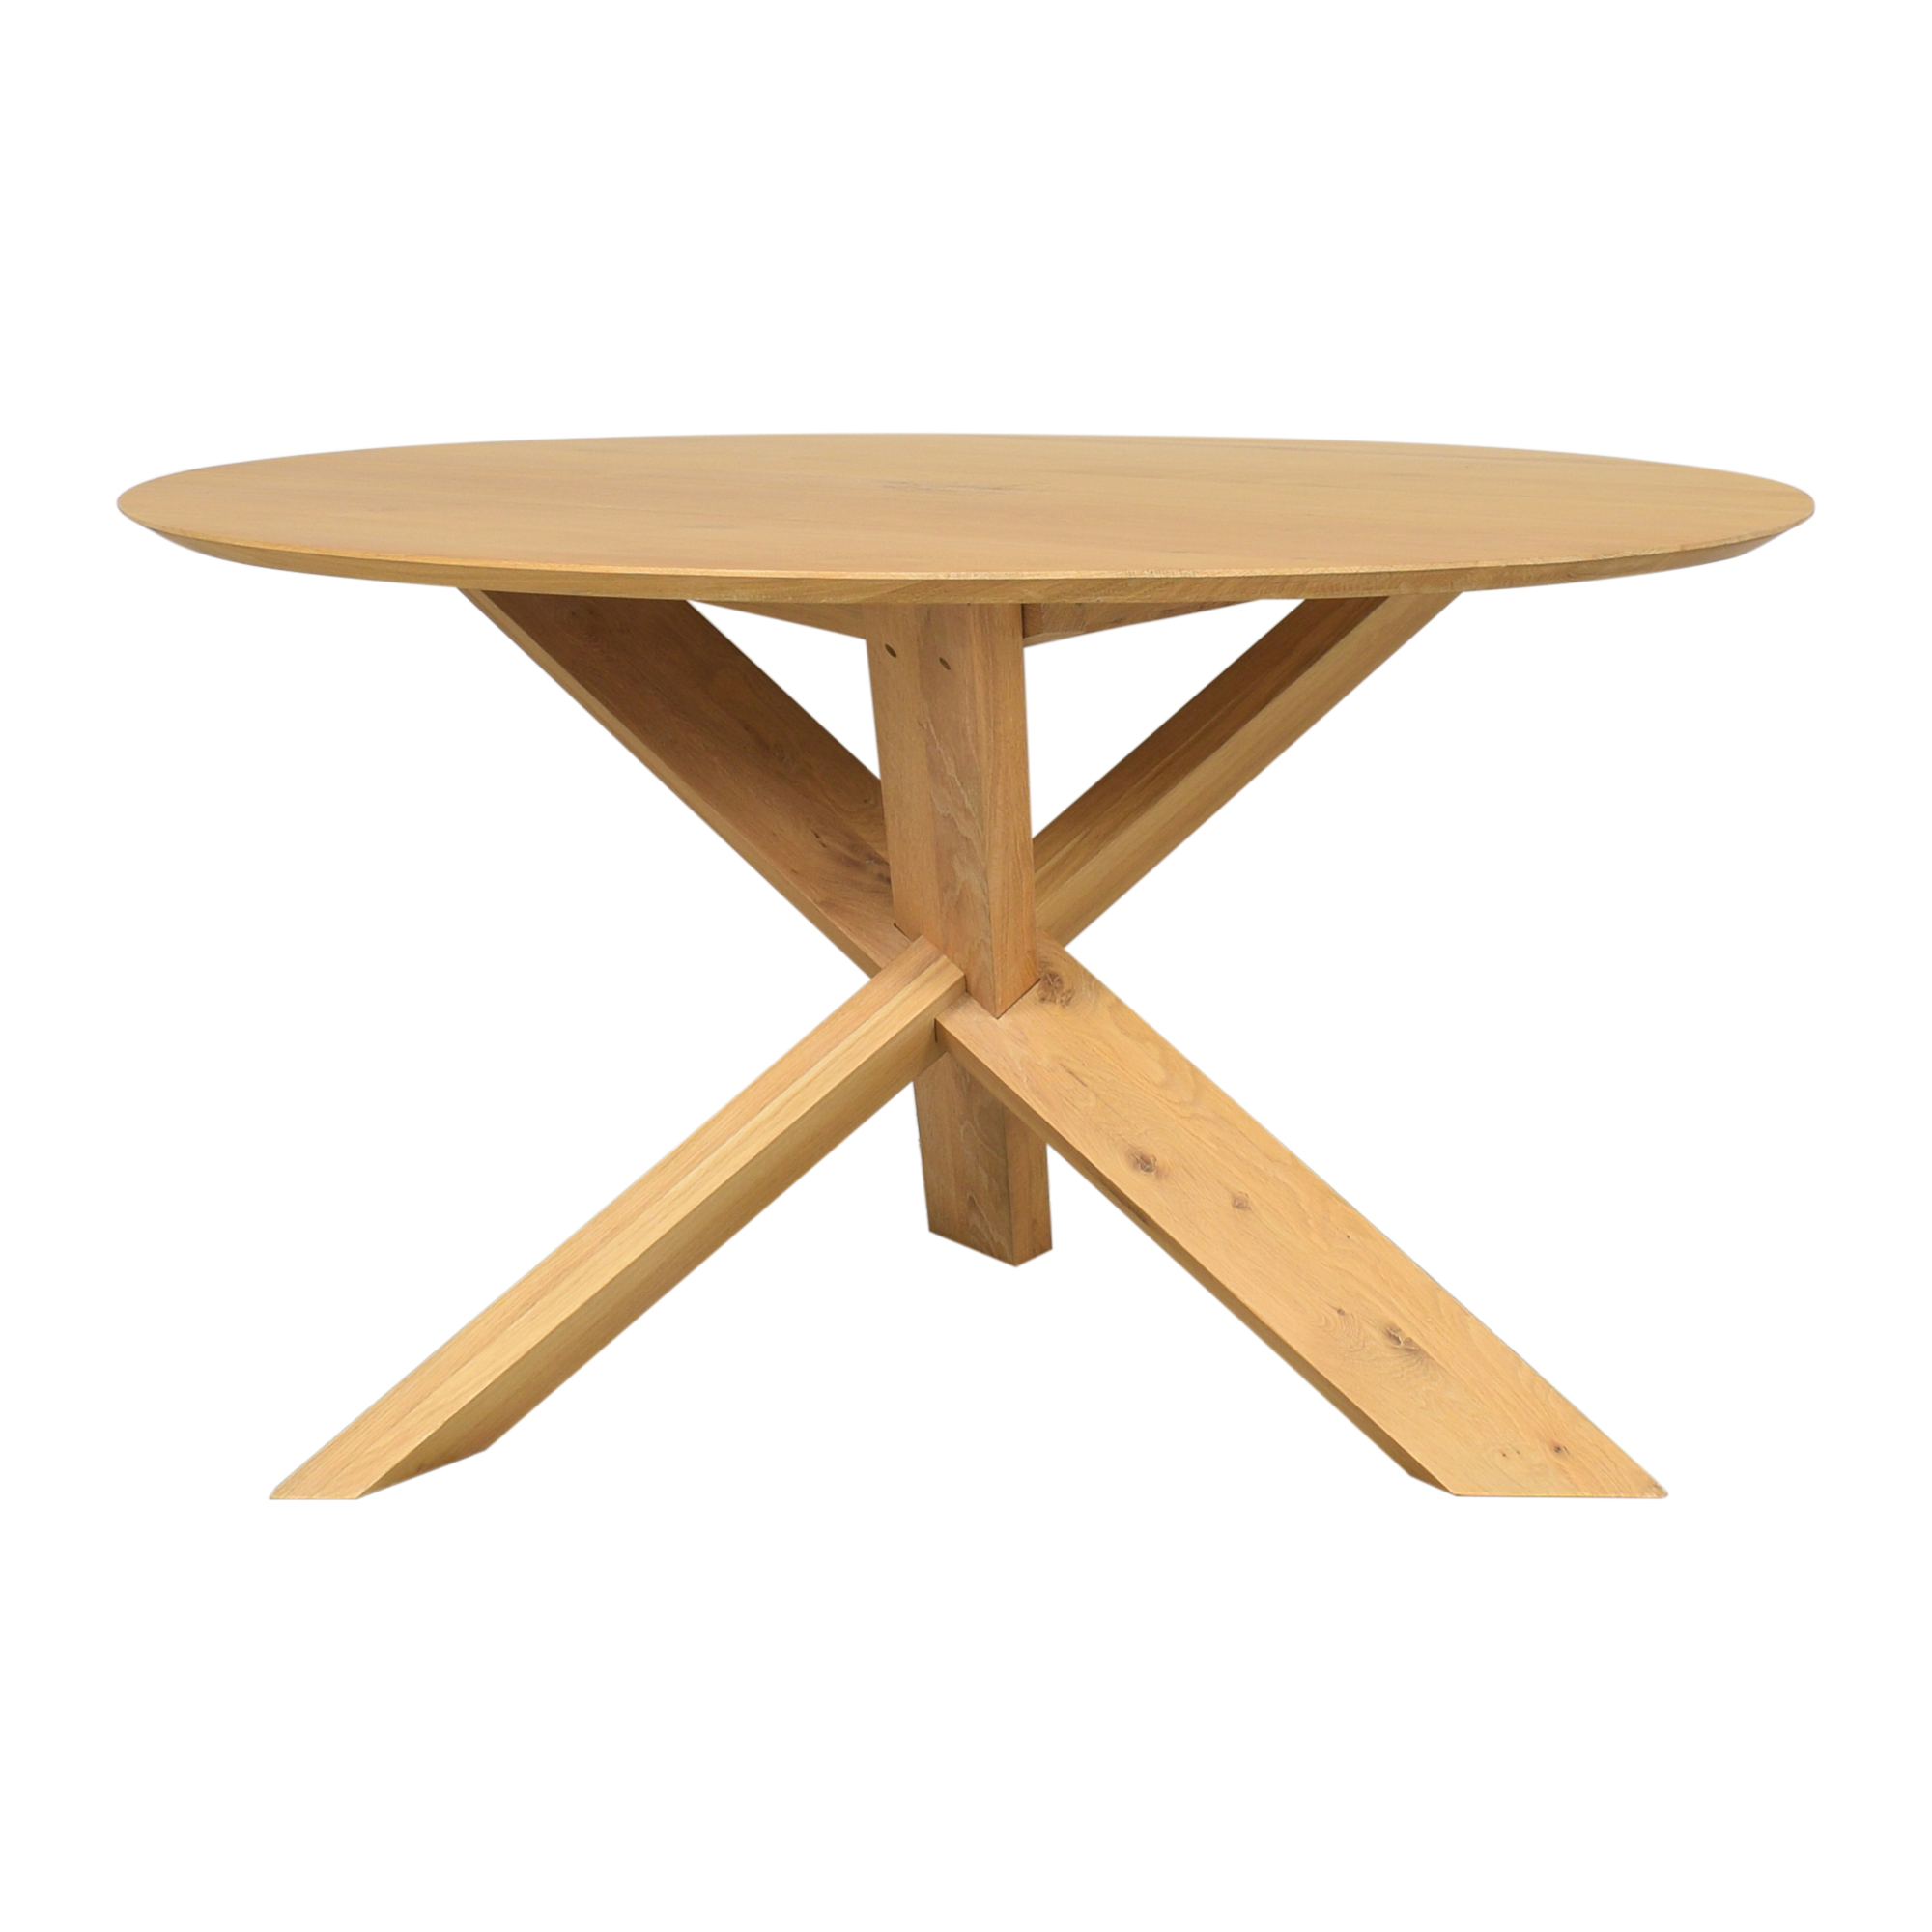 Ethnicraft Ethnicraft Circle Dining Table price